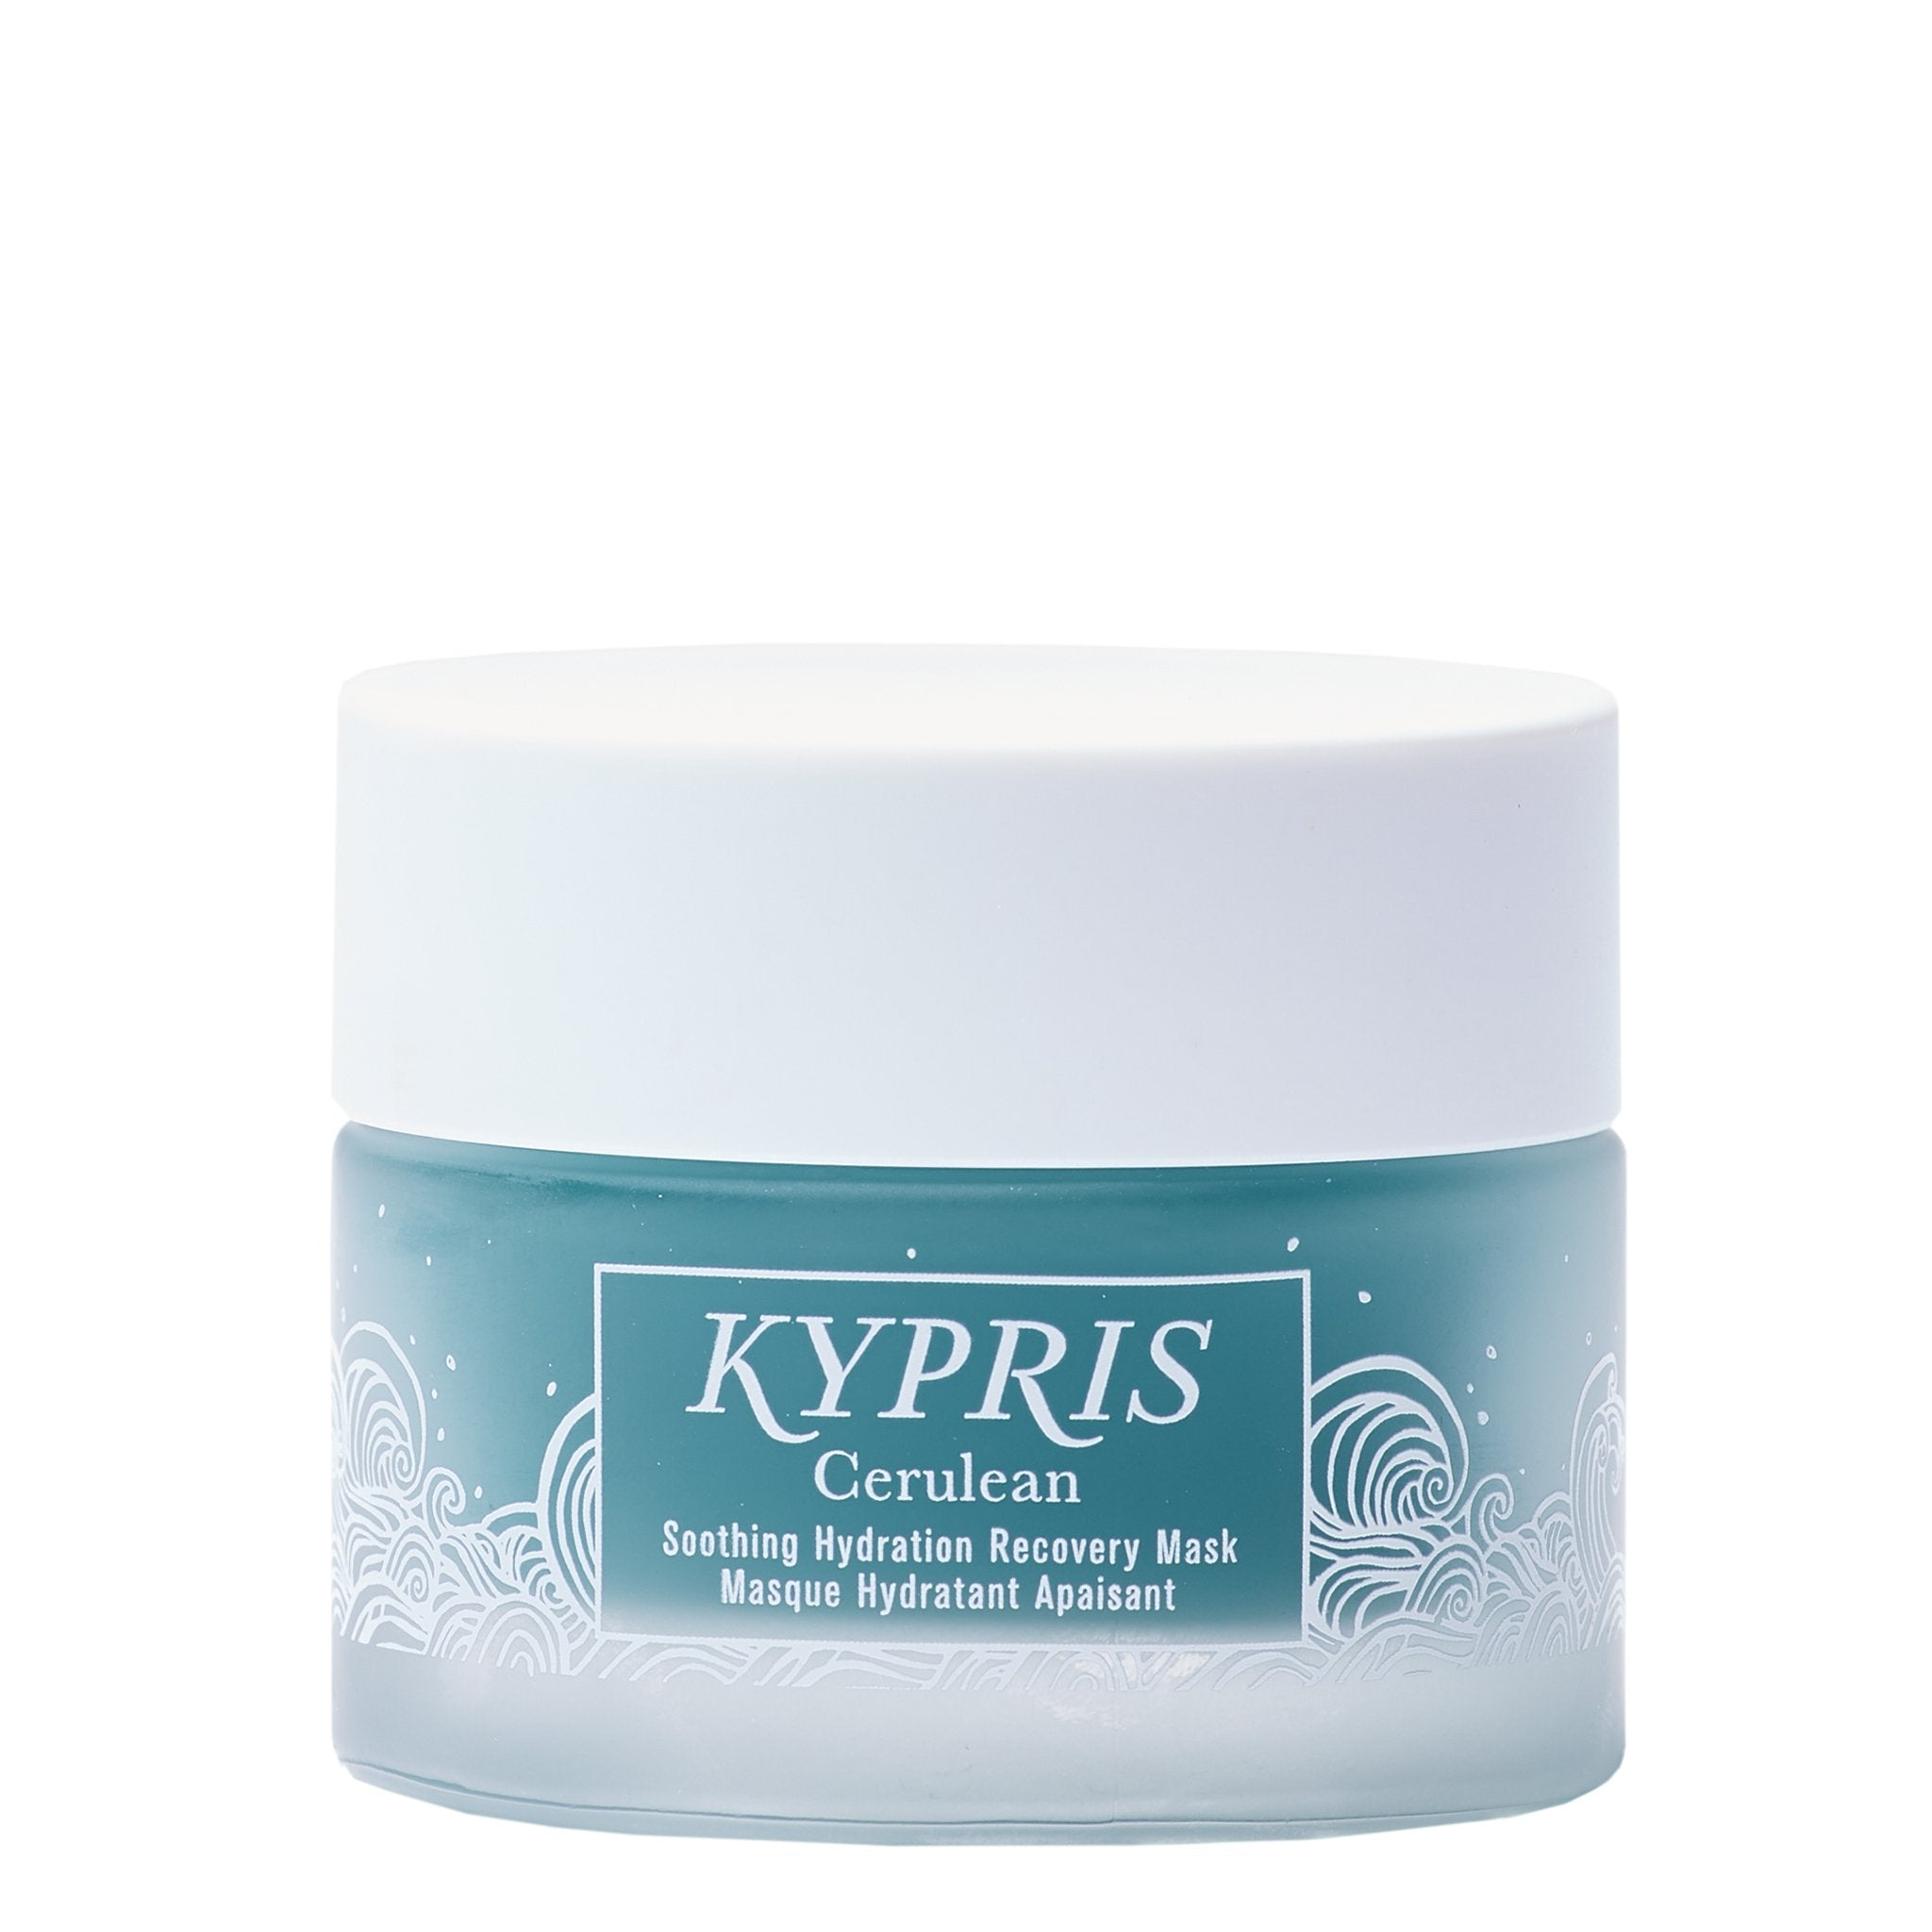 KYPRIS Beauty - Cerulean Soothing Hydration Recovery Mask